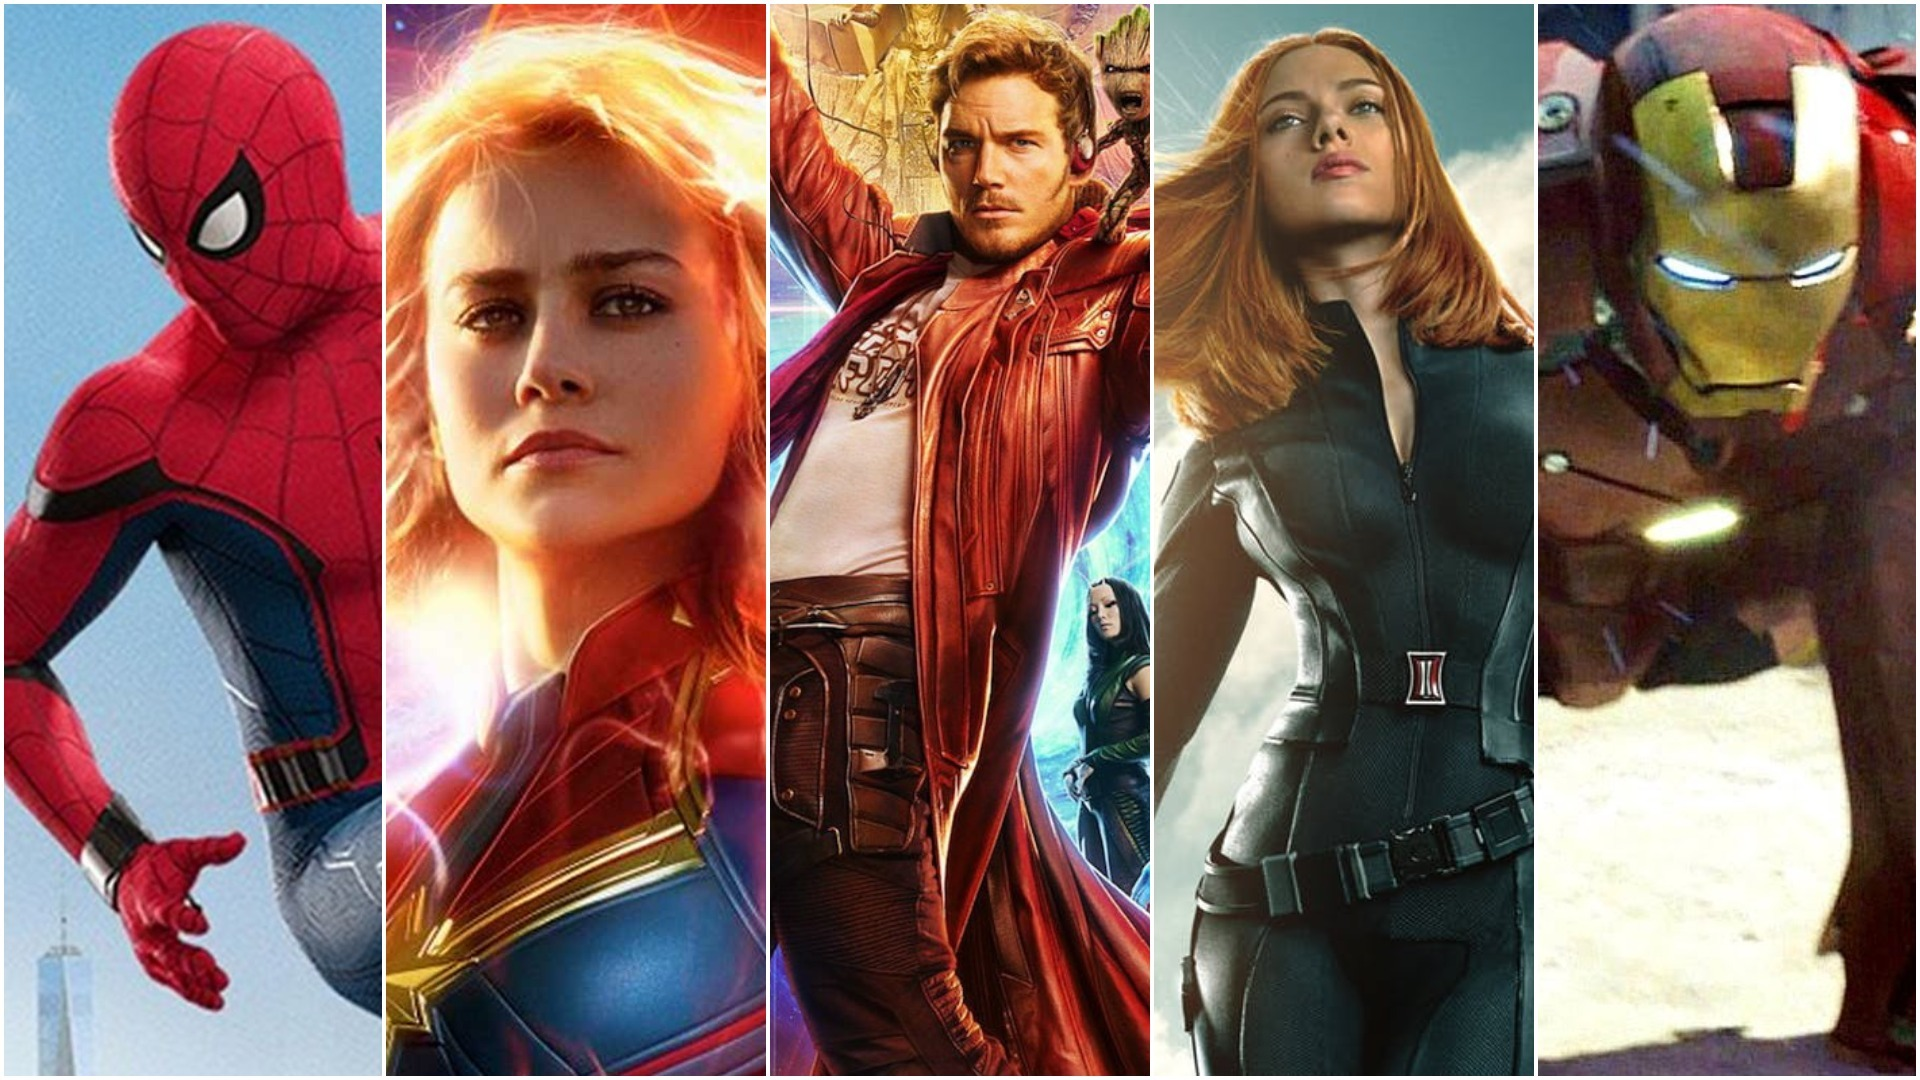 Marvel Cinematic Universe's Next Movies After Spider-Man- Far From Home